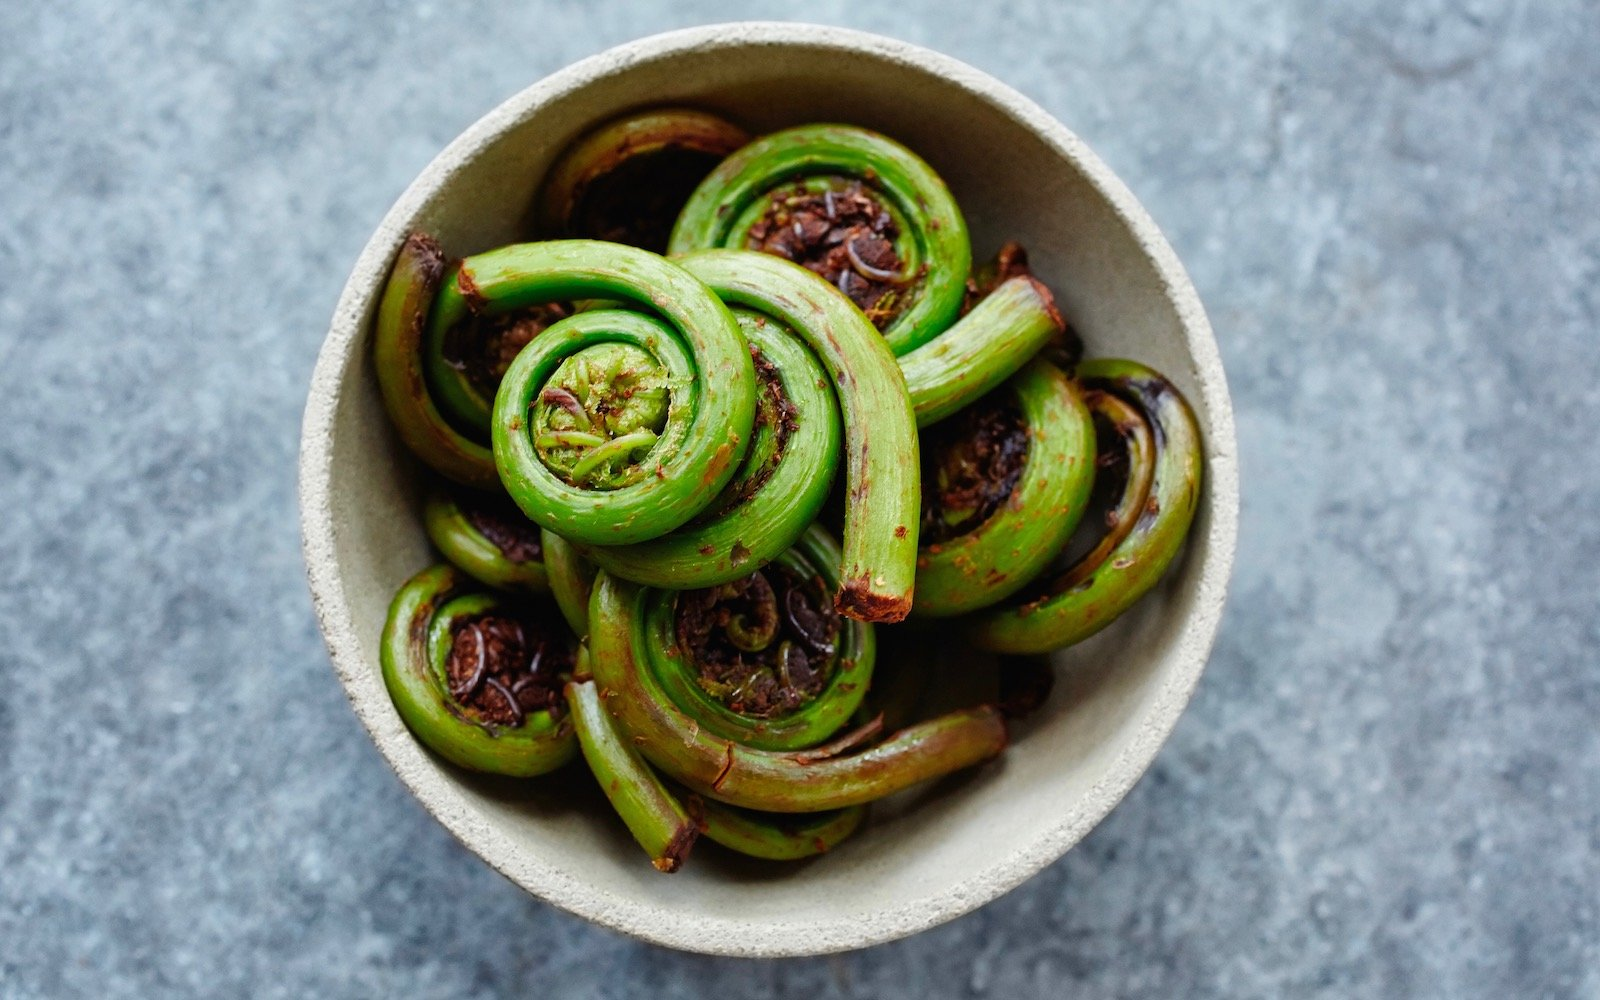 fiddlehead-EDIBLEPLANTS0518.jpg